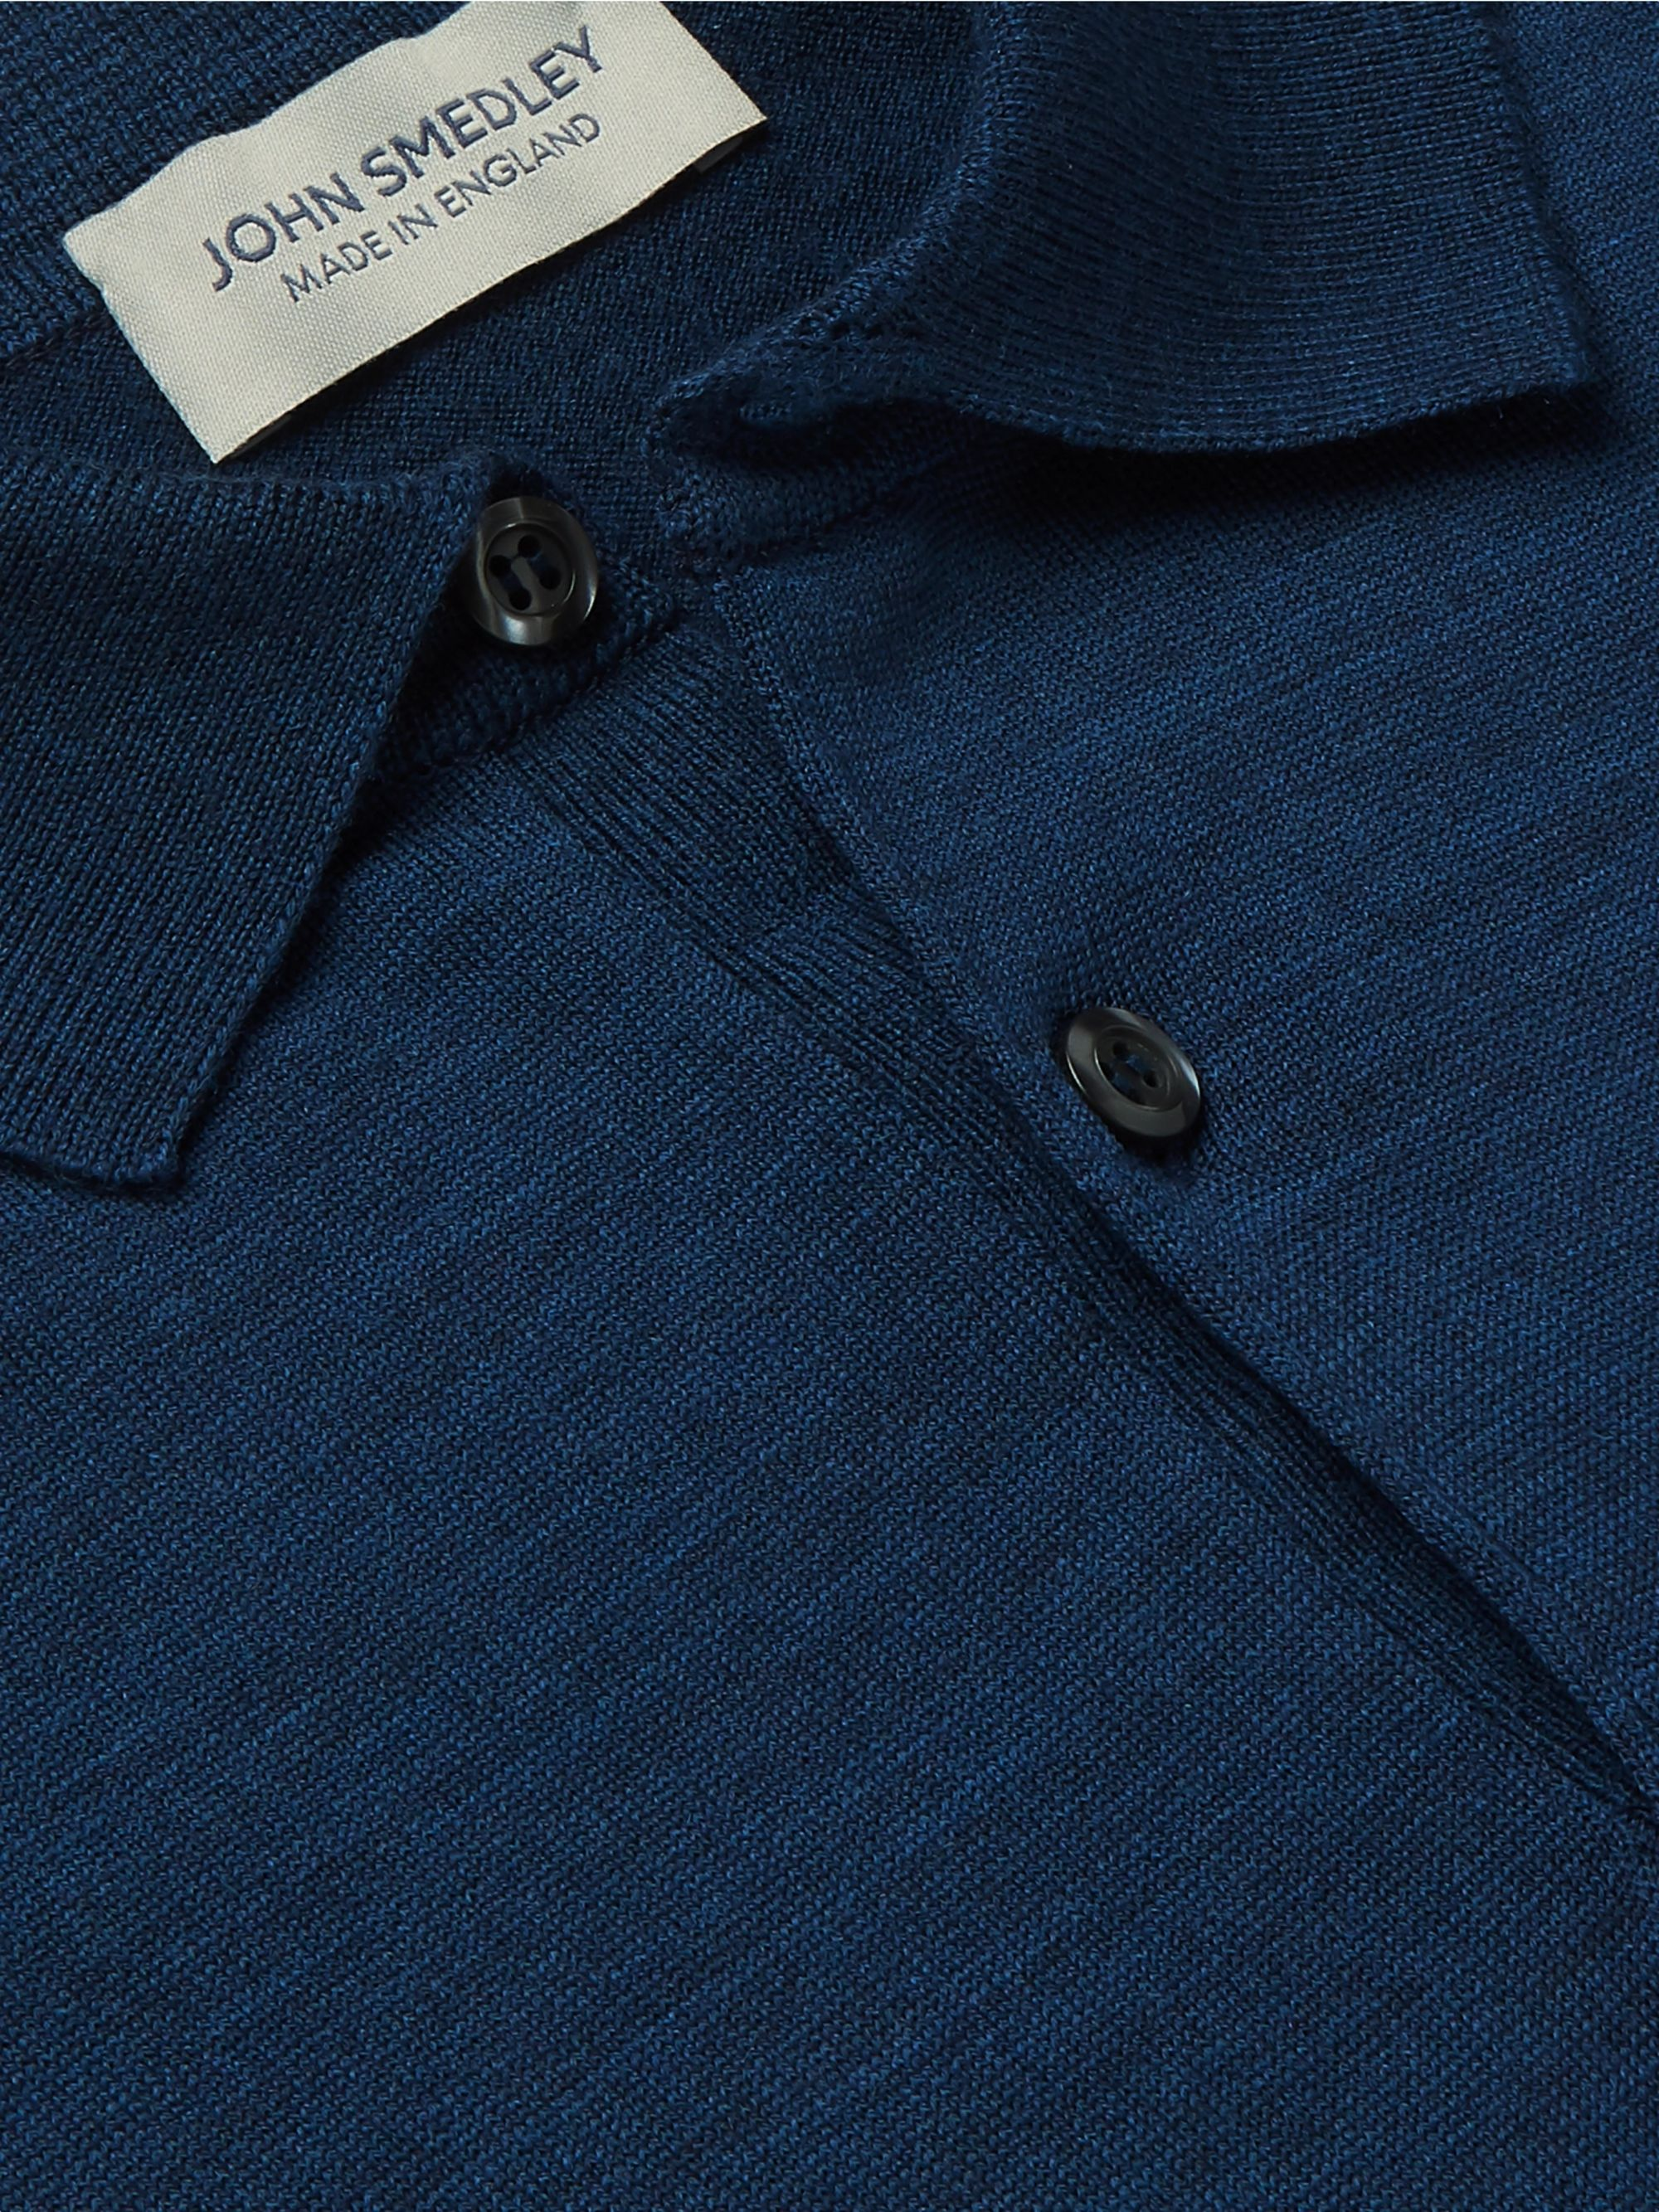 John Smedley Payton Slim-Fit Wool Polo Shirt